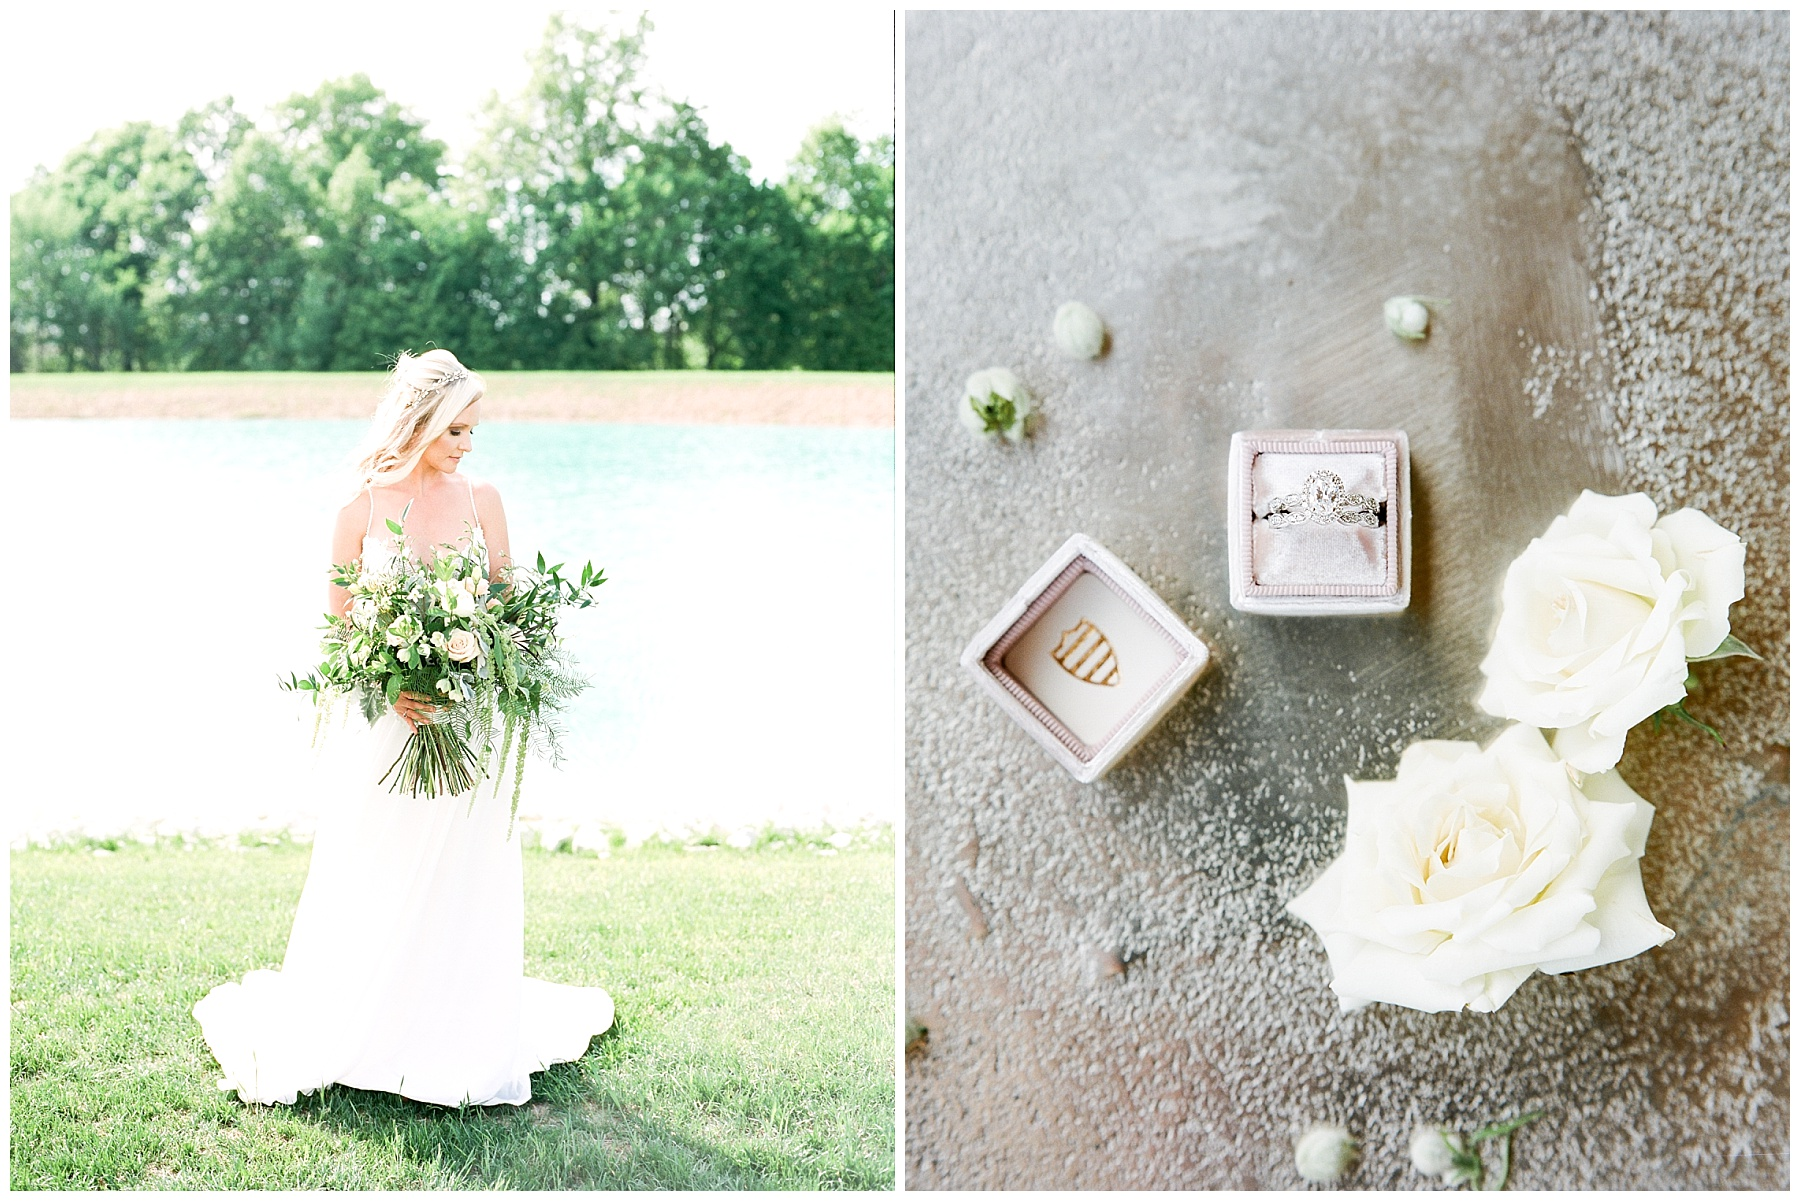 Textural Organic Wedding in All White Venue by Kelsi Kliethermes Wedding Photographer - Missouri, Midwest, and Destinations_0043.jpg